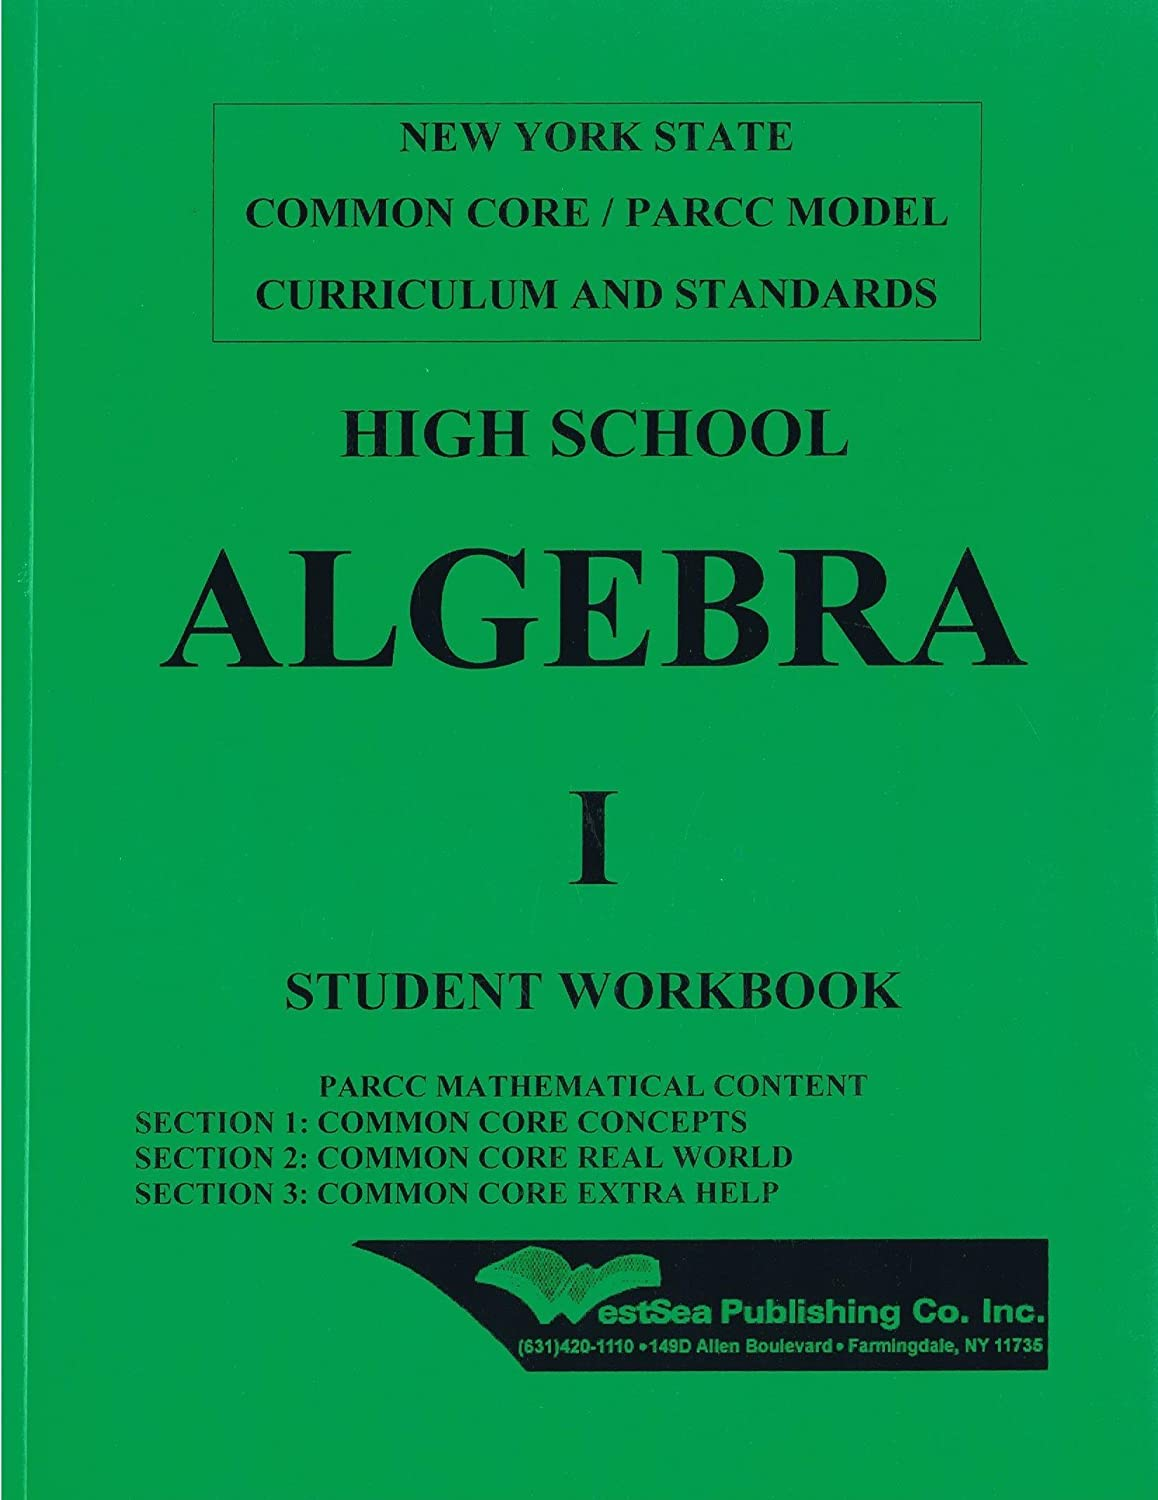 Amazon.com : High School Algebra 1 Student Workbook NY State Common Core /  PARCC Model Curriculum and Standards : Everything Else